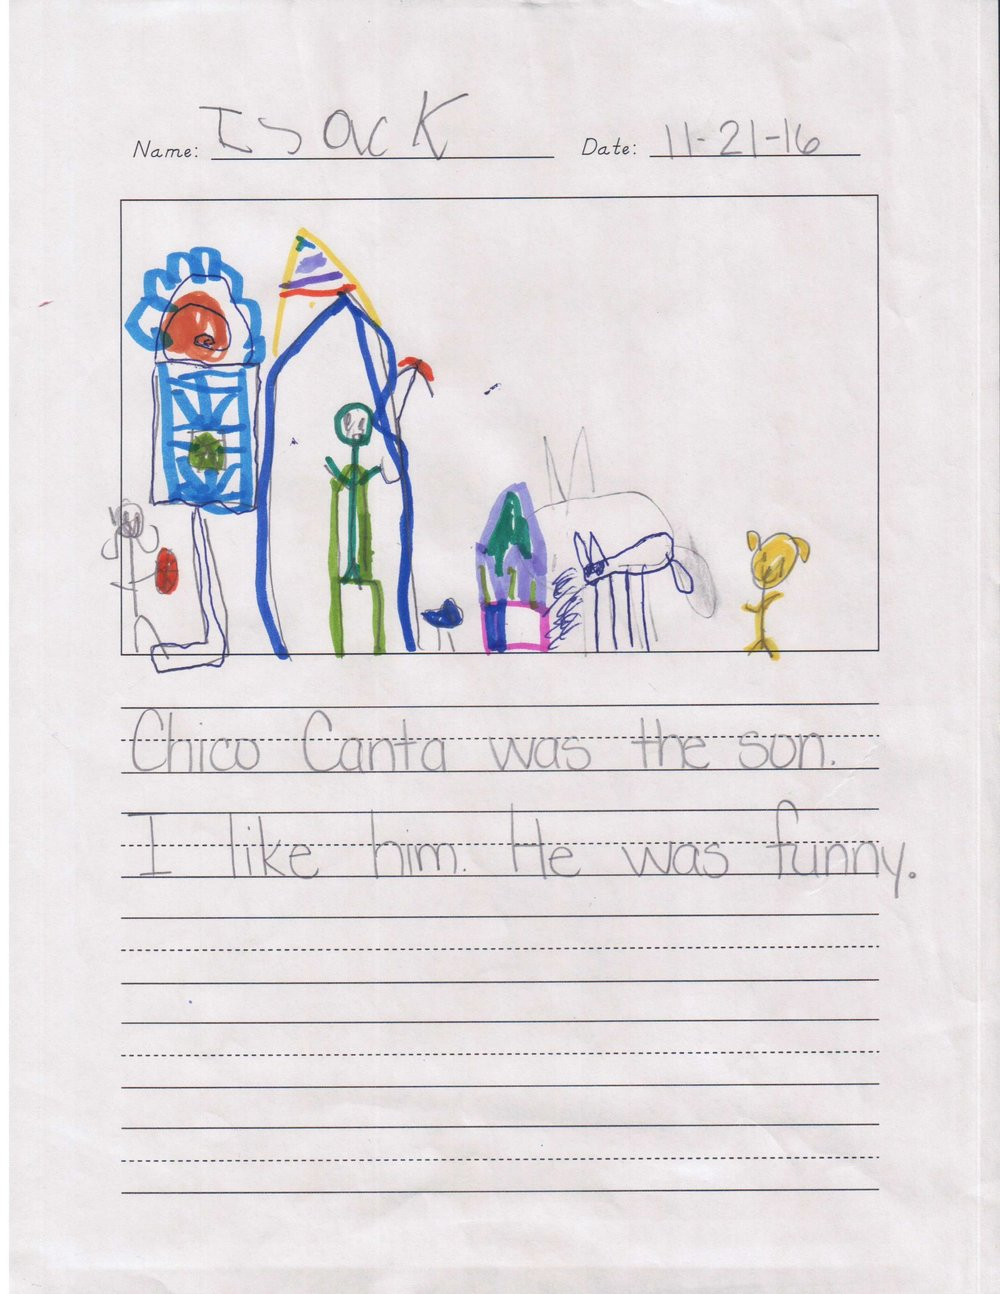 """Chico Canta was the son. I like him. He was funny."" - A student from Scarborough Elementary/Houston ISD."